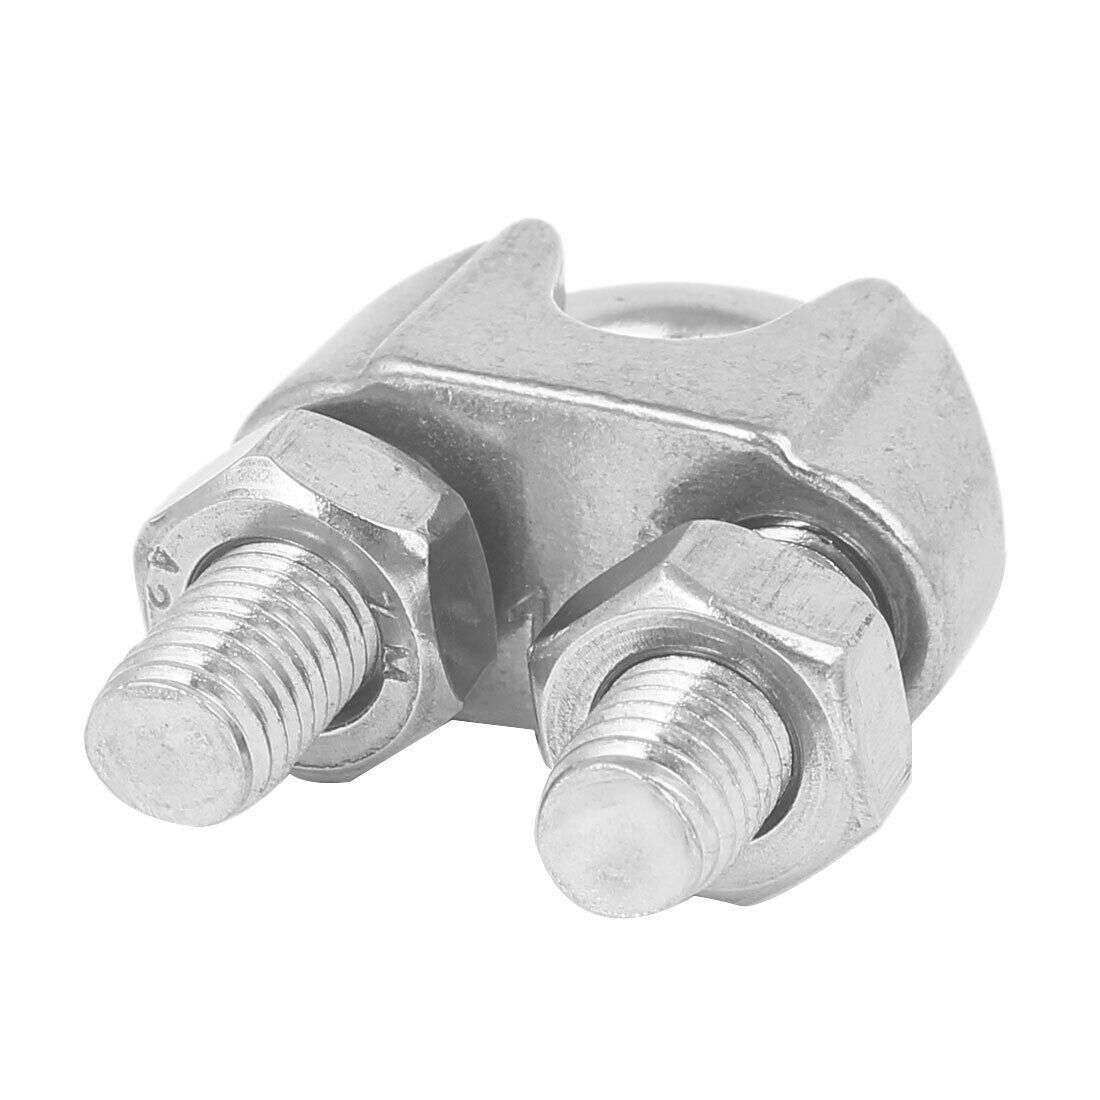 M12 304 STAINLESS Steel U-Shape Bolt Saddle Clamp Cable Wire Rope ...